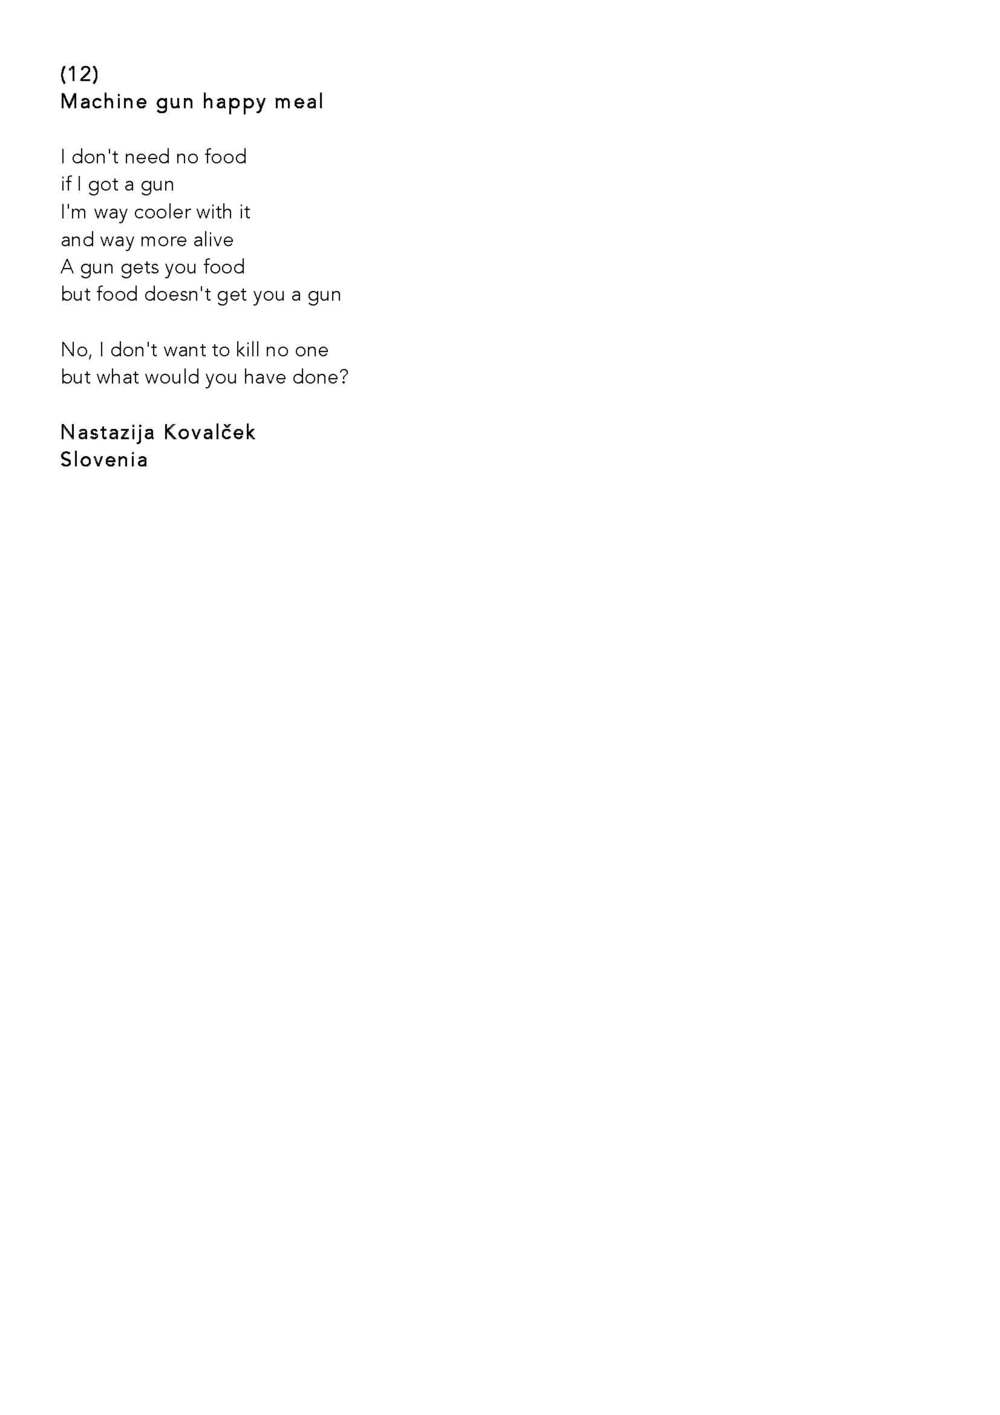 Poetry Collection - Everyone can Poetry _ For 19 April 2014_Page_13.jpg